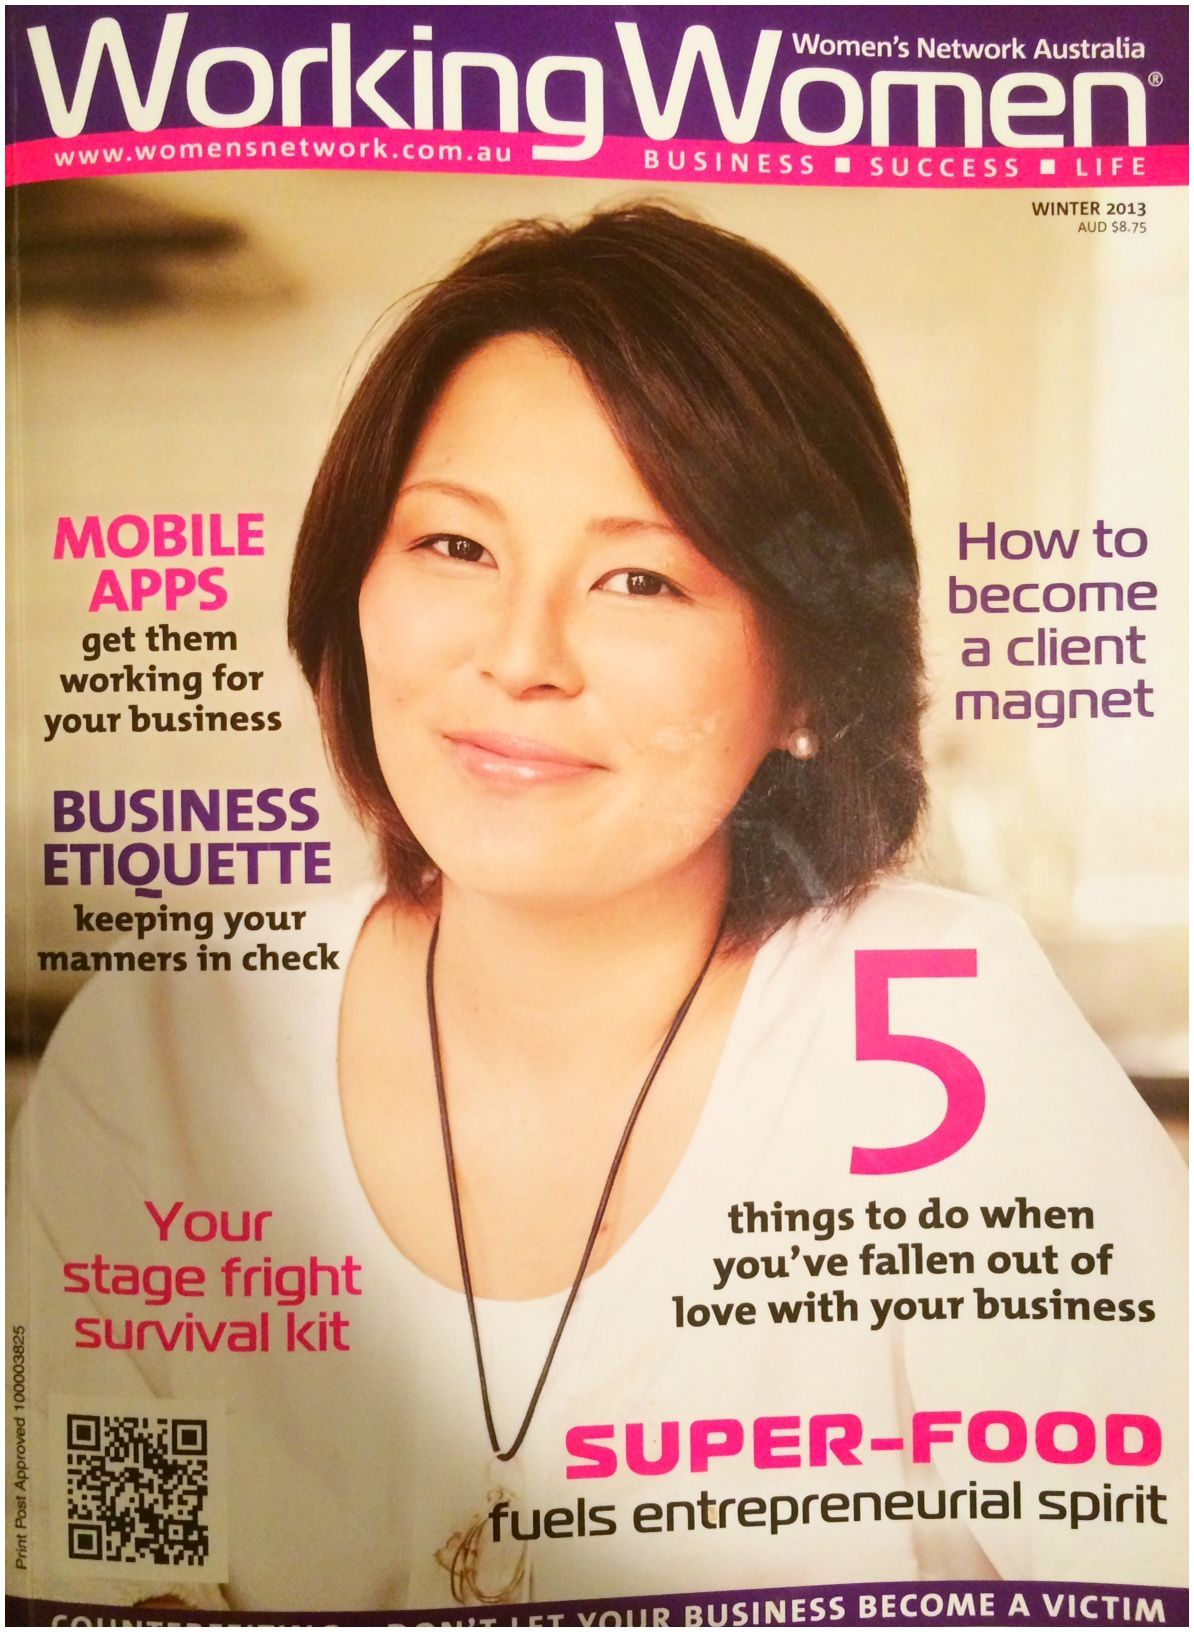 Success Magazine Article On Business Etiquette Does It Really Matter Anymore